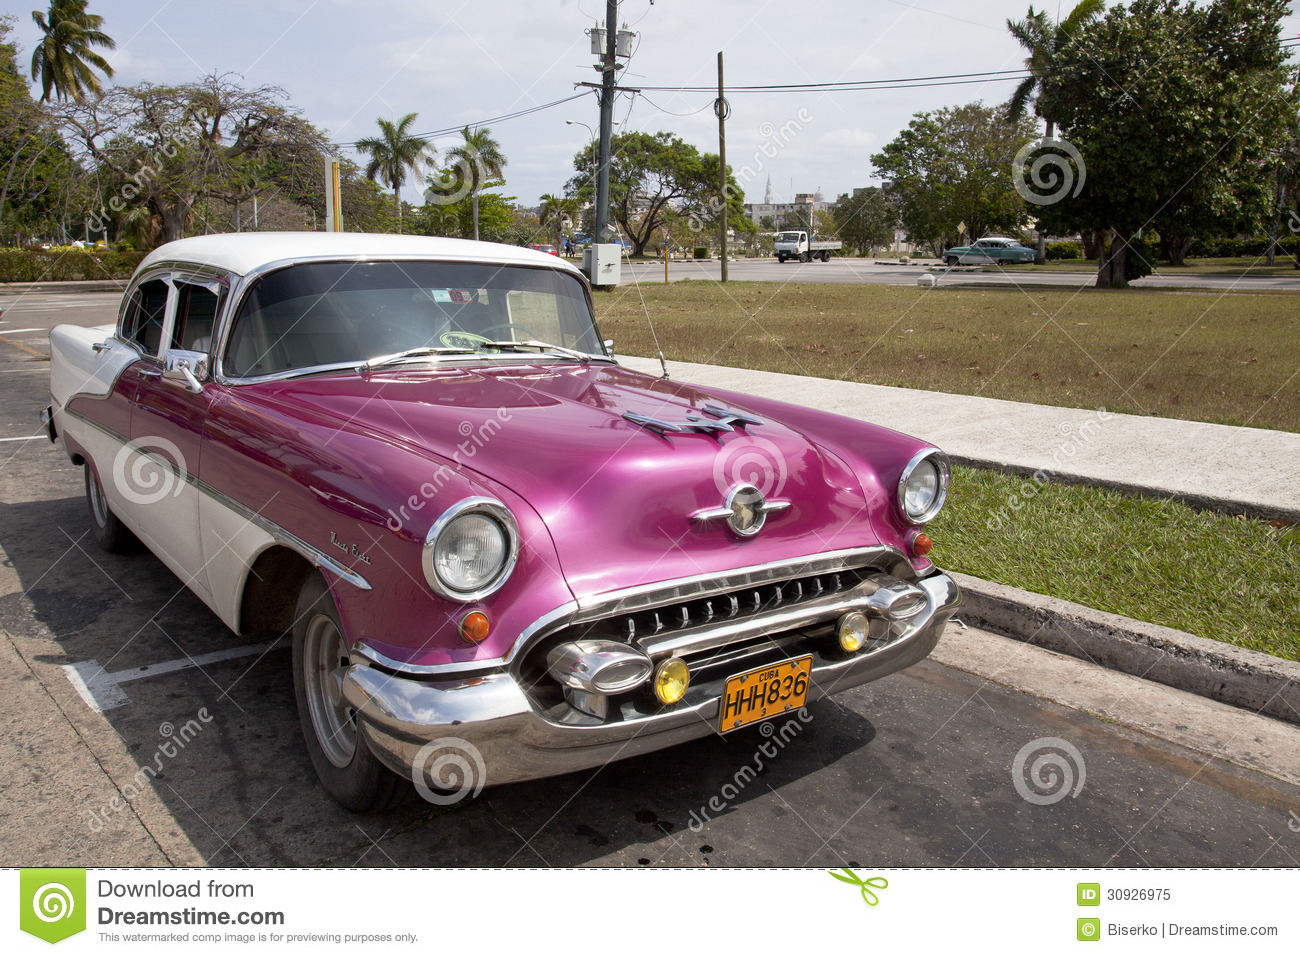 Old american car in havana cuba editorial image image for Old american cars